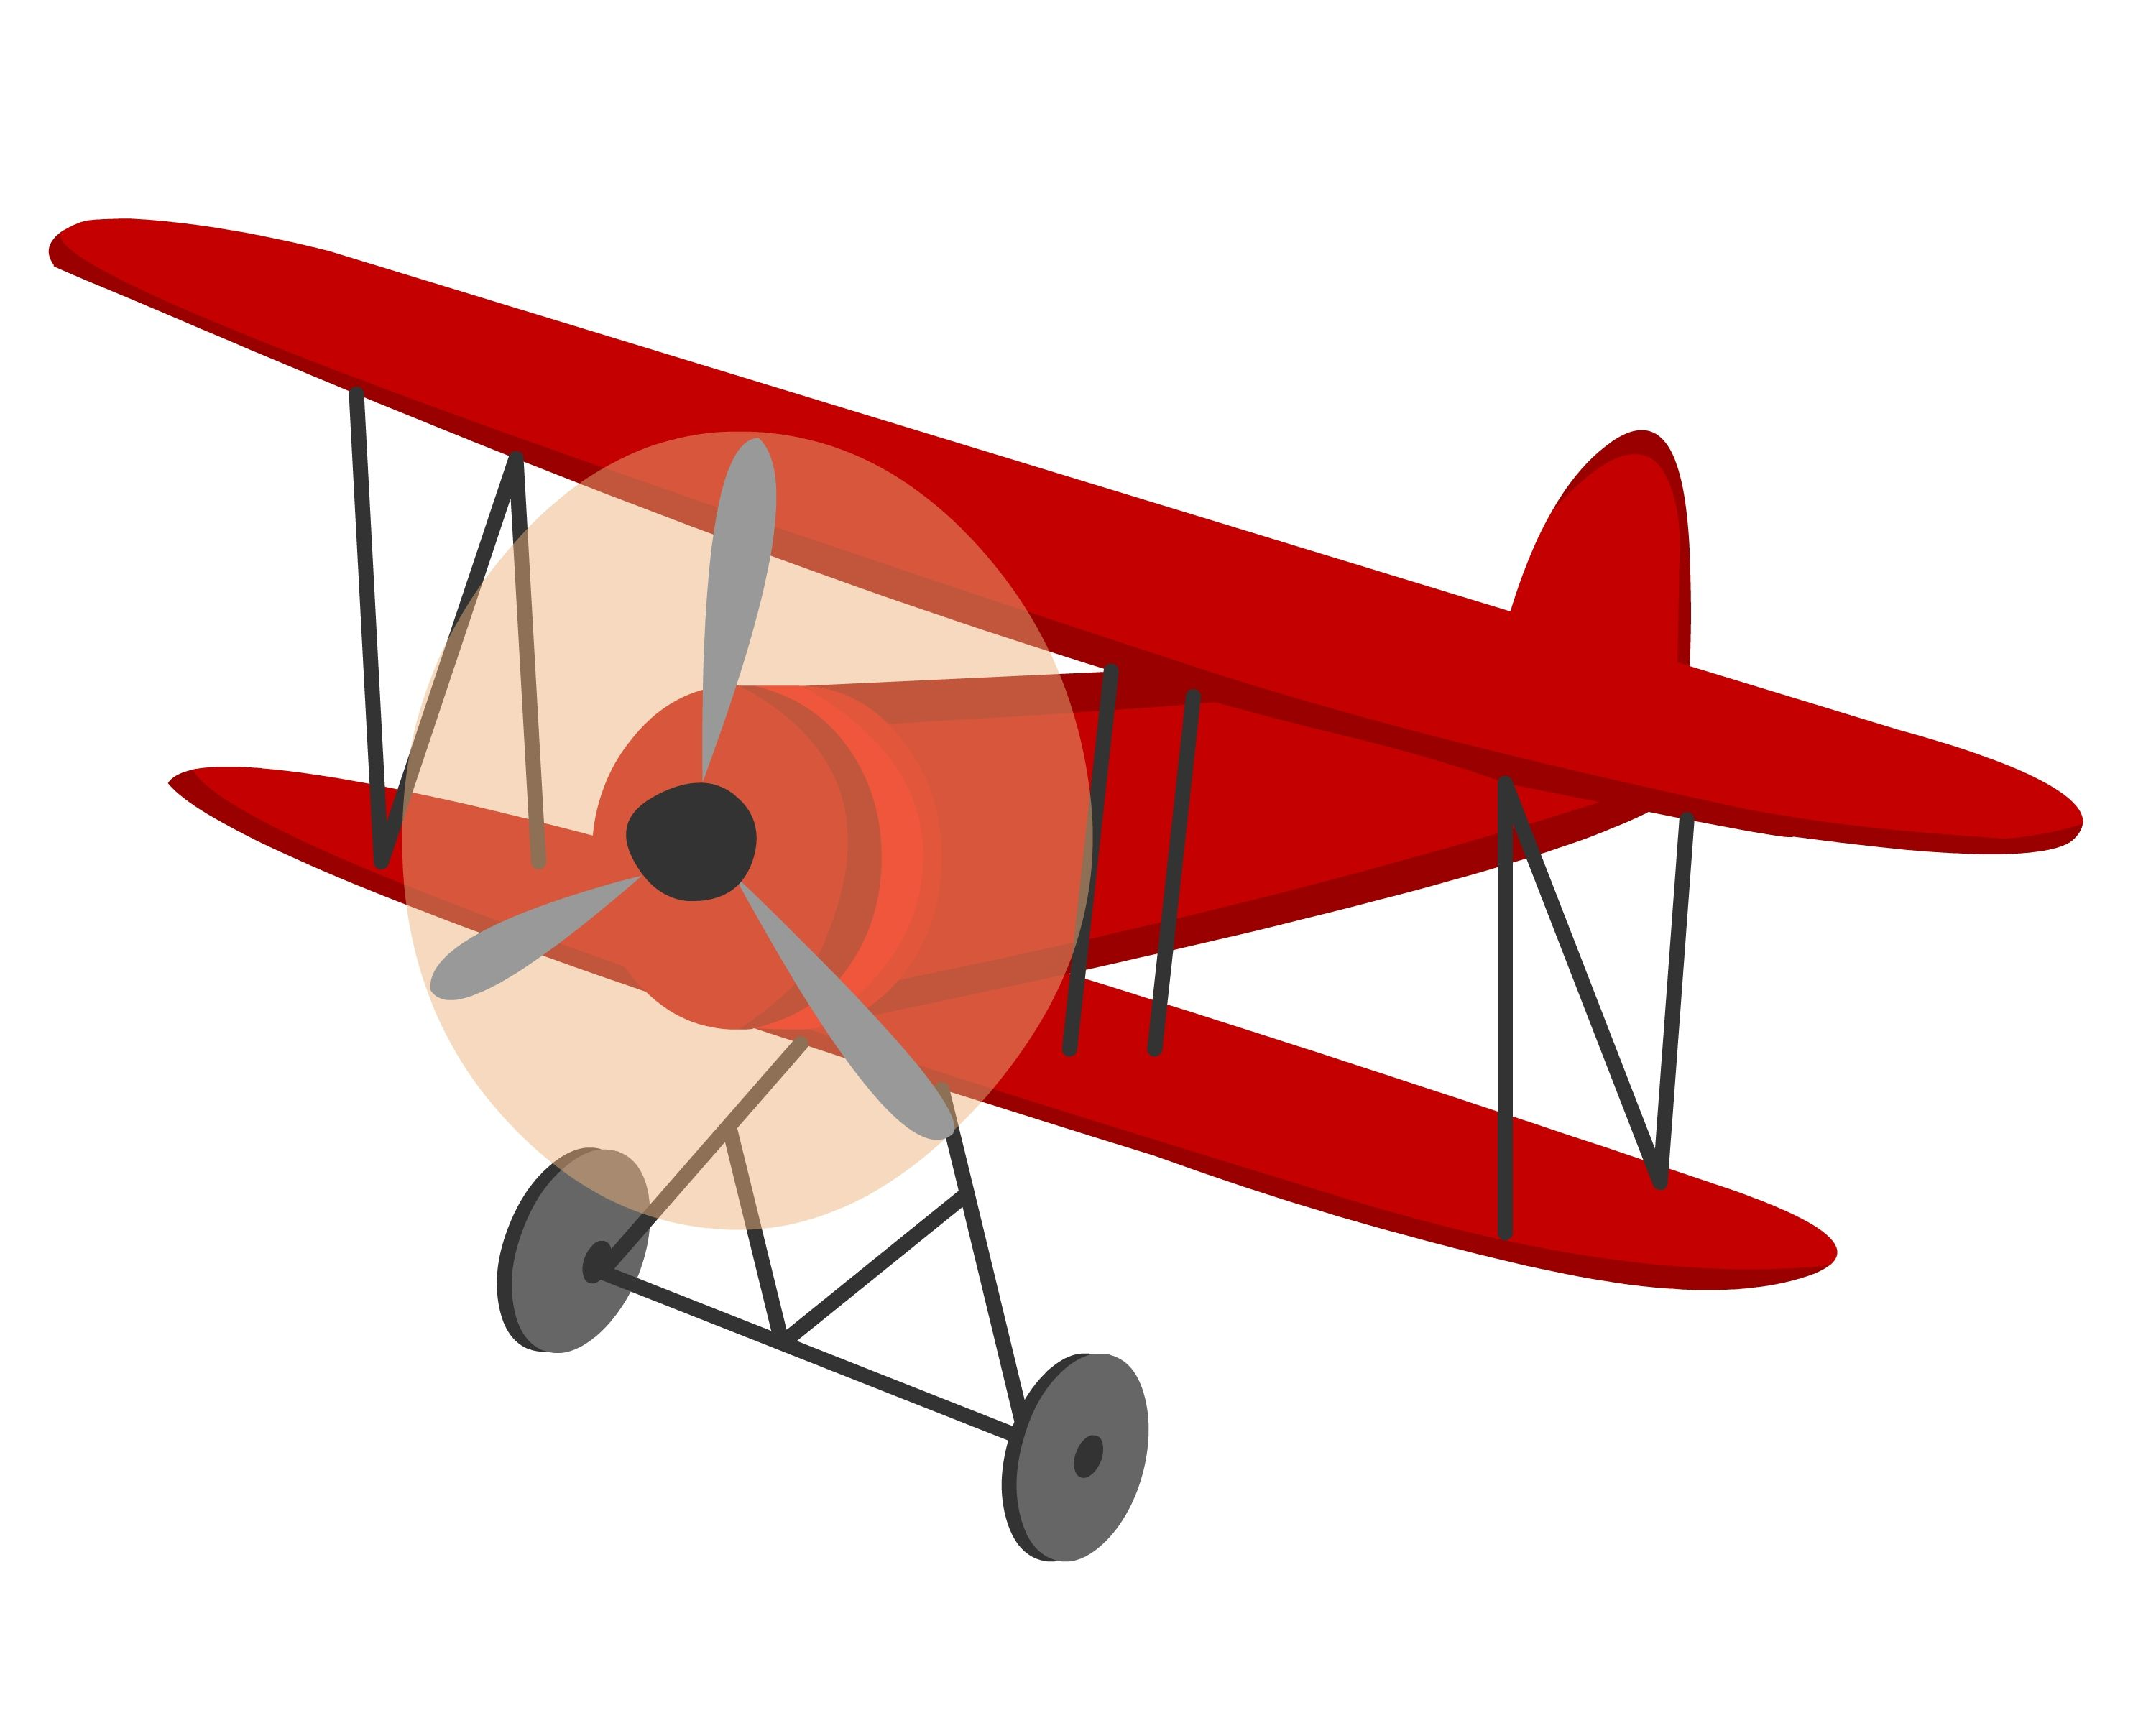 Skywriting plane clipart banner free stock Vintage Biplane Clipart Vintage biplane clipart | The men in my life ... banner free stock